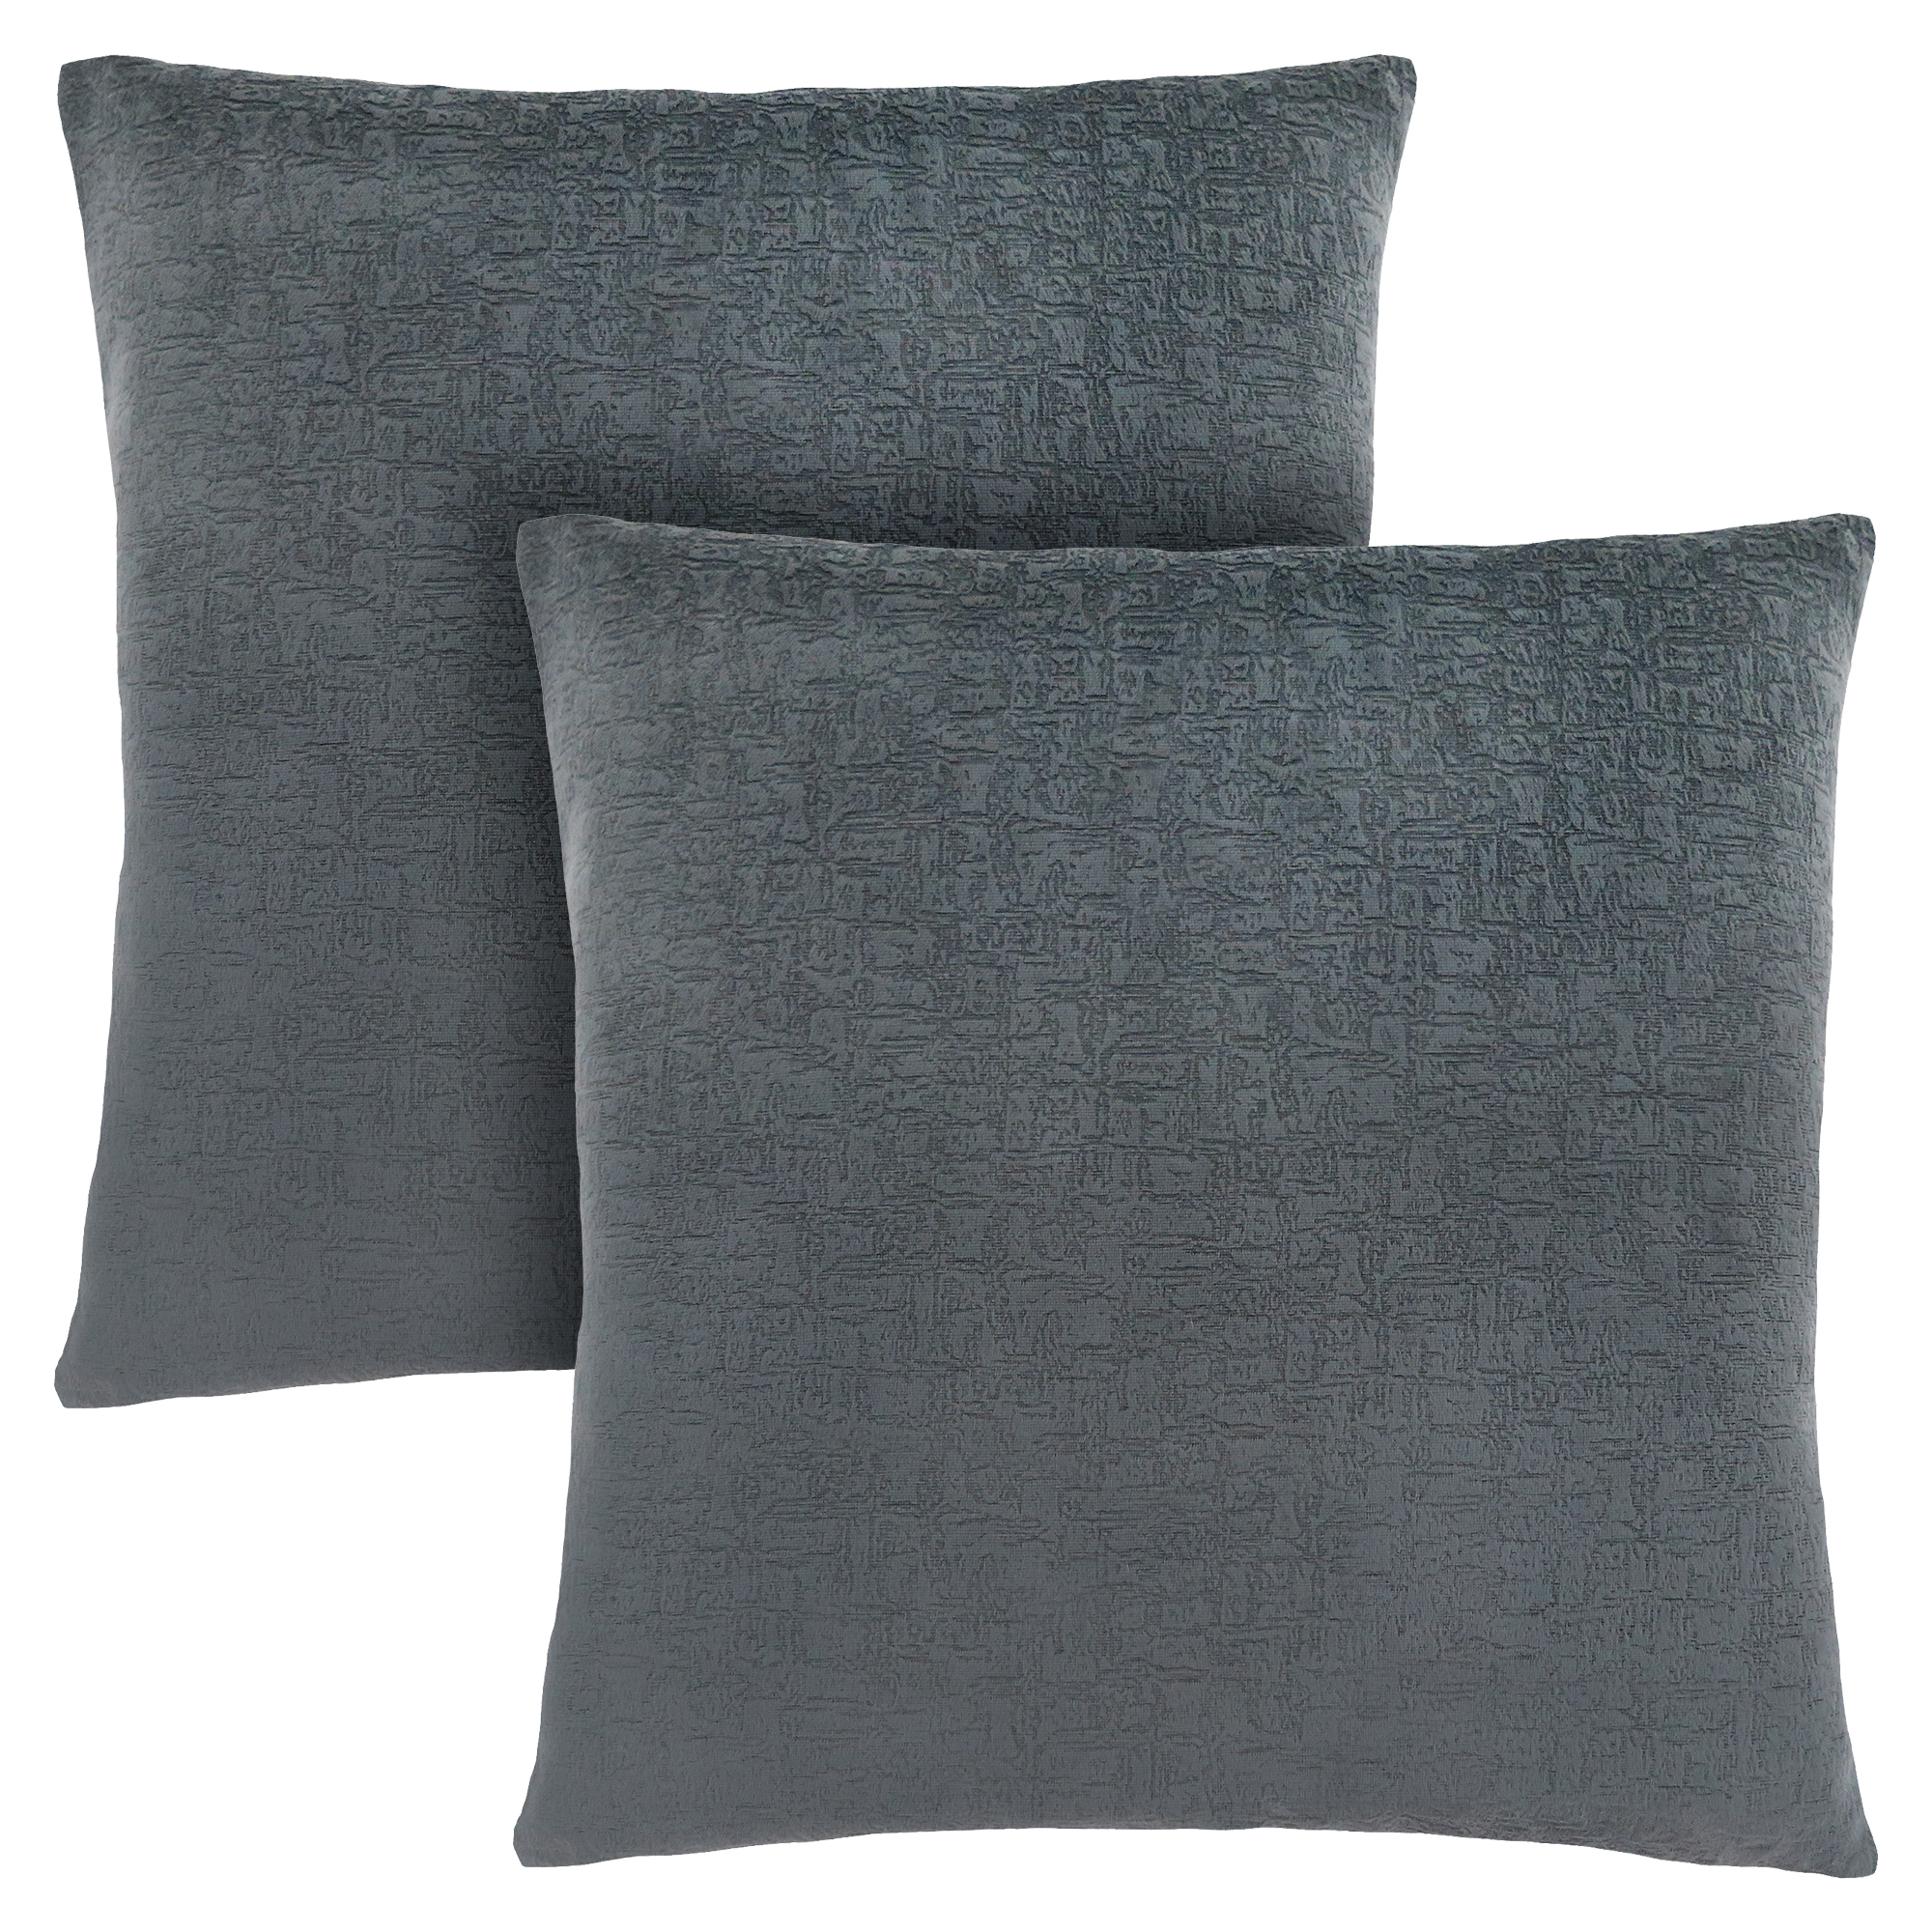 "PILLOW - 18""X 18"" / DARK GREY MOSAIC VELVET / 2PCS"